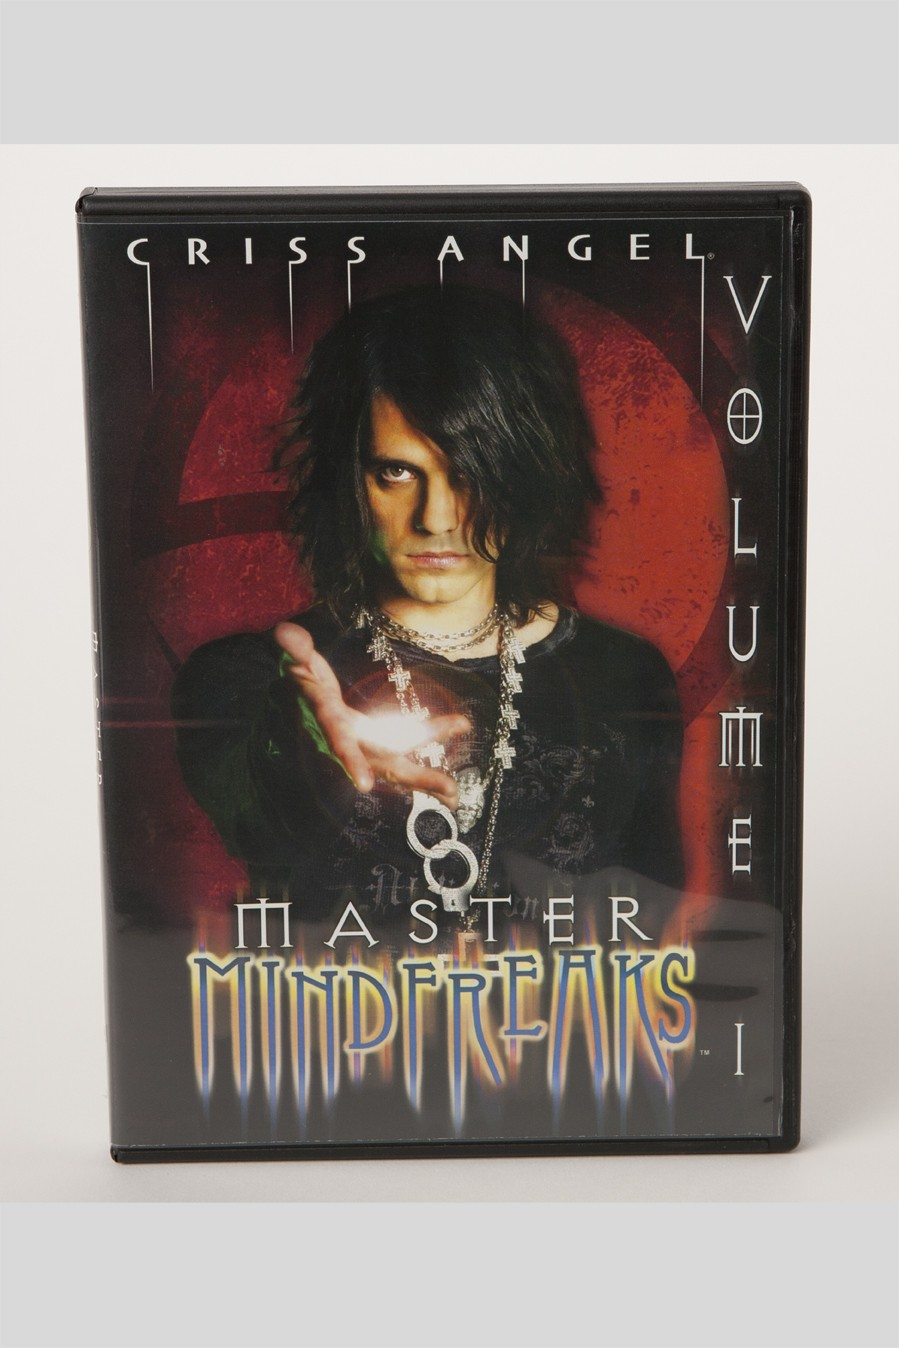 DVD CRISS ANGEL MASTER MINDFREAKS VOL 1